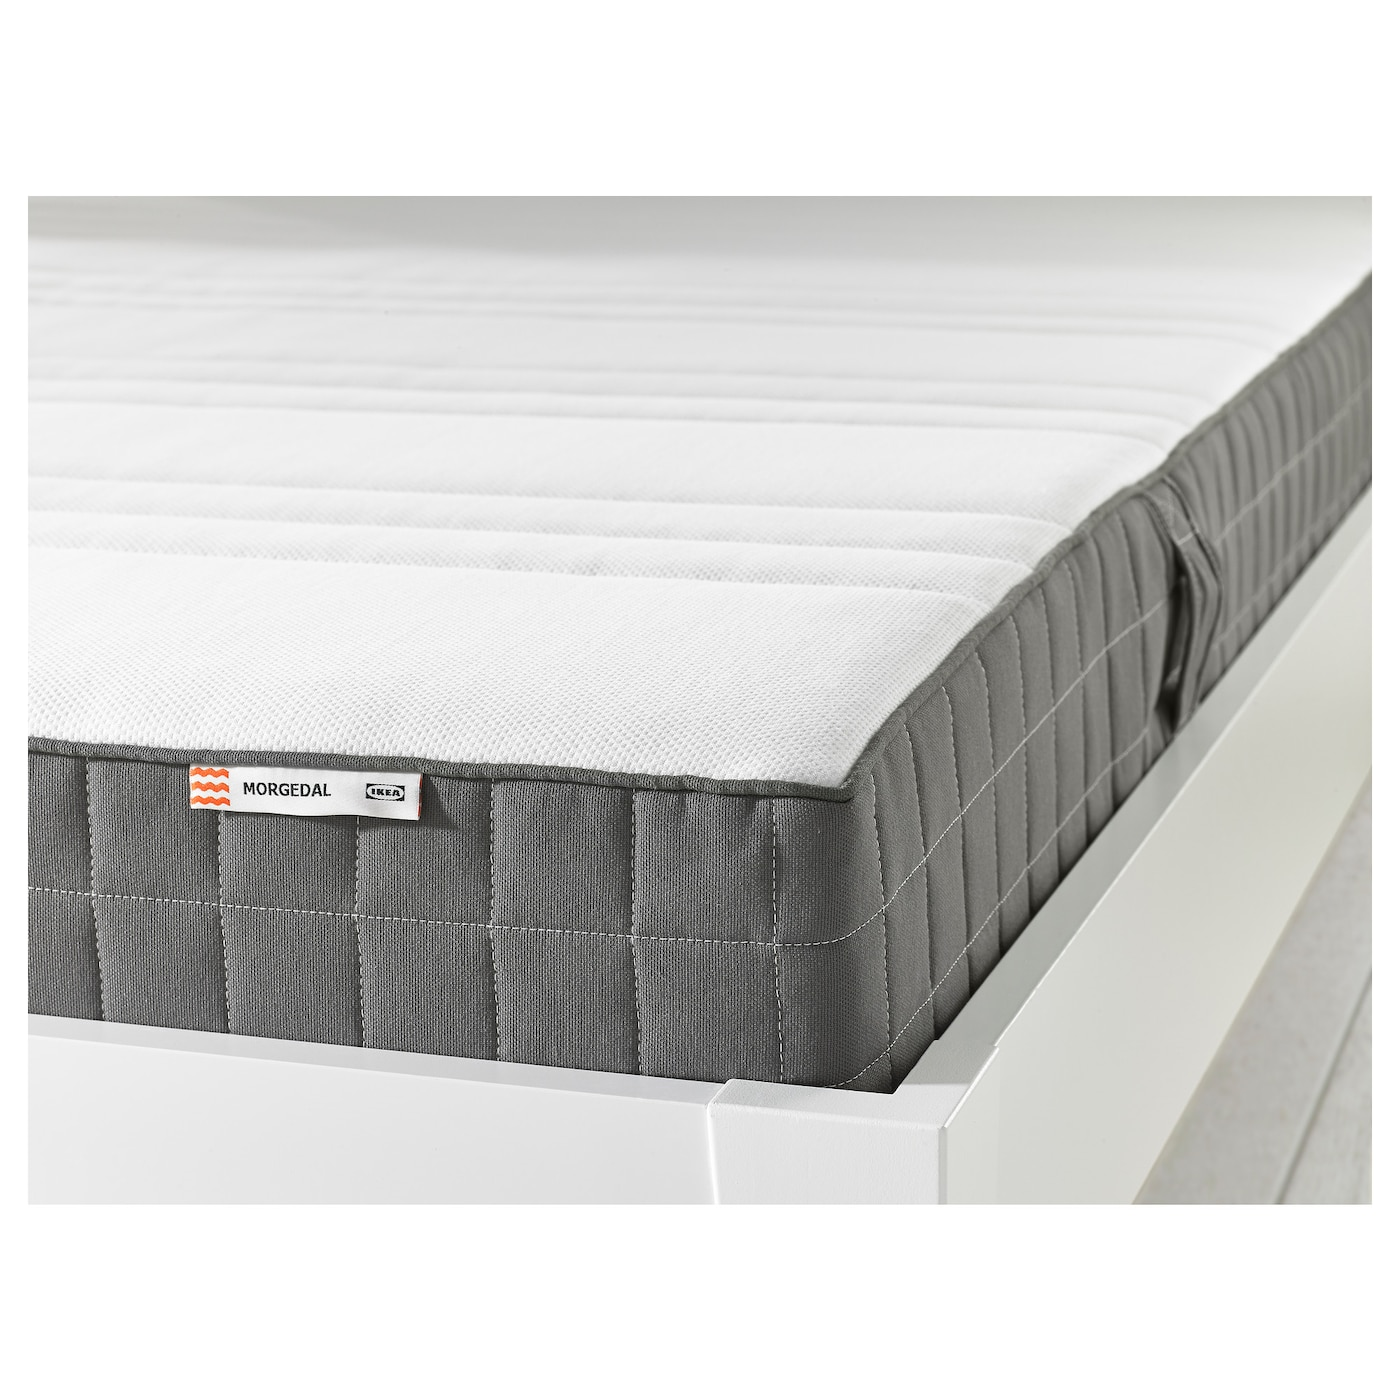 IKEA MORGEDAL memory foam mattress A generous layer of soft fillings adds support and comfort.